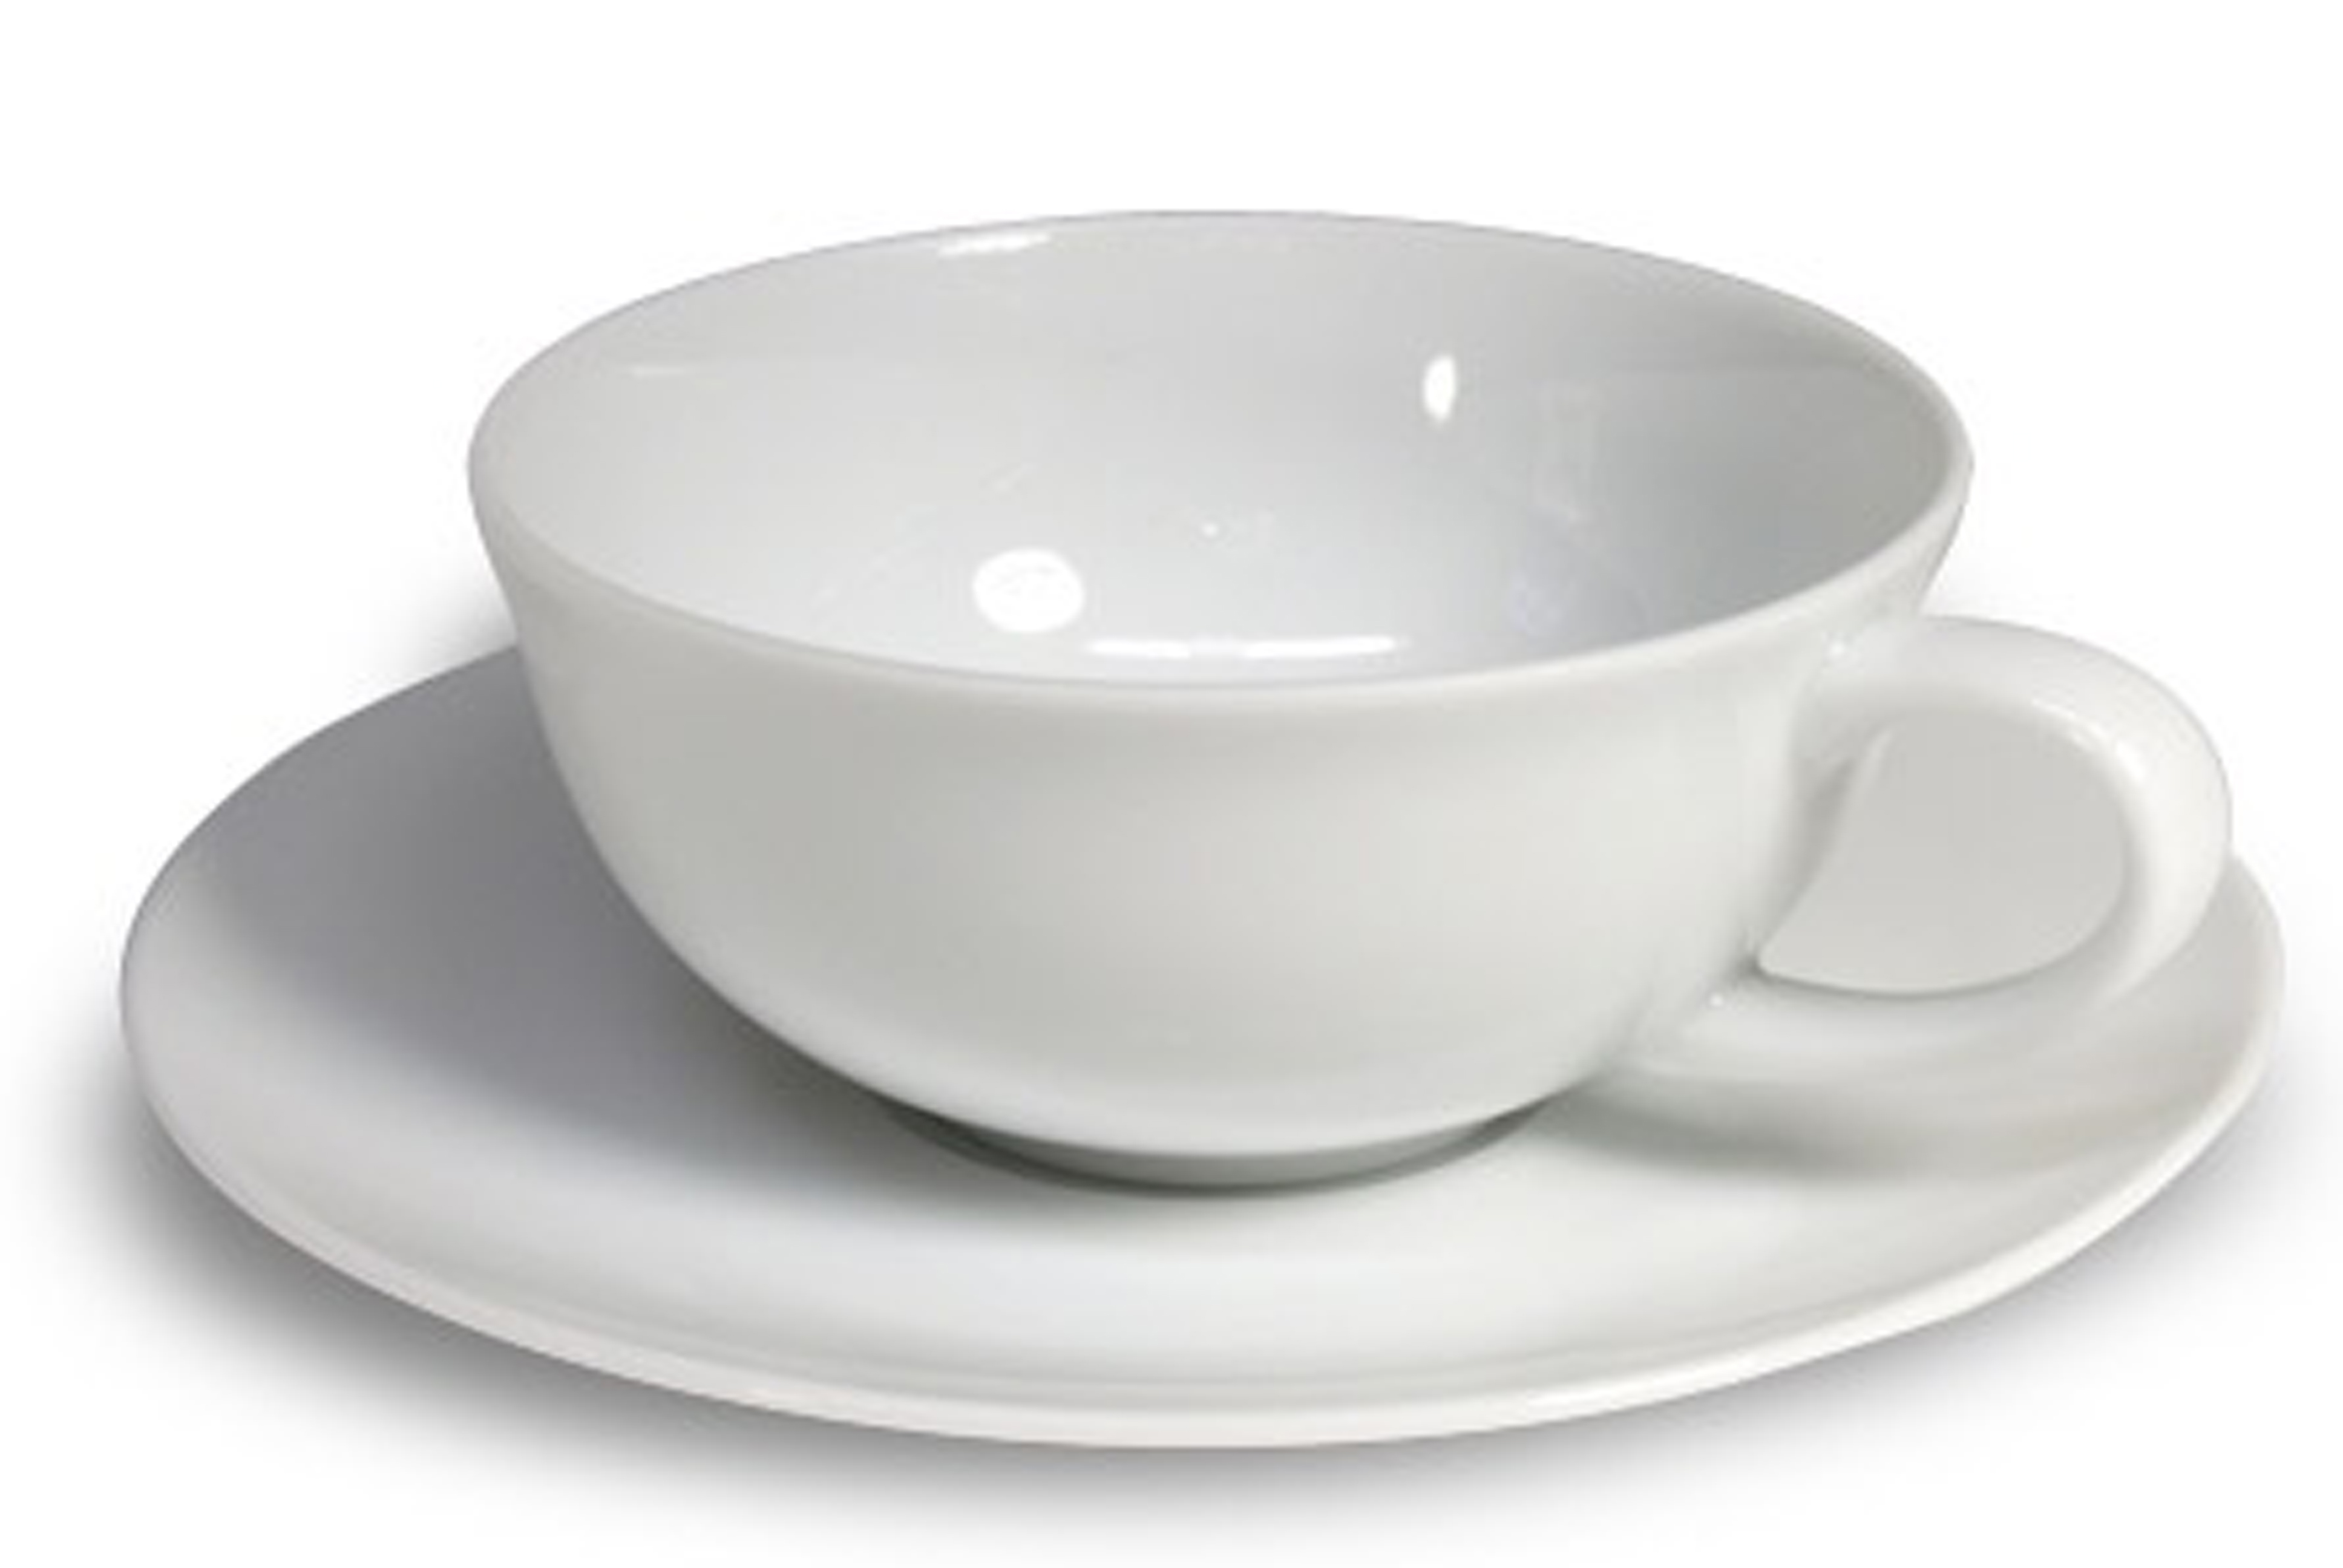 Ronnefeldt Teacup and Saucer